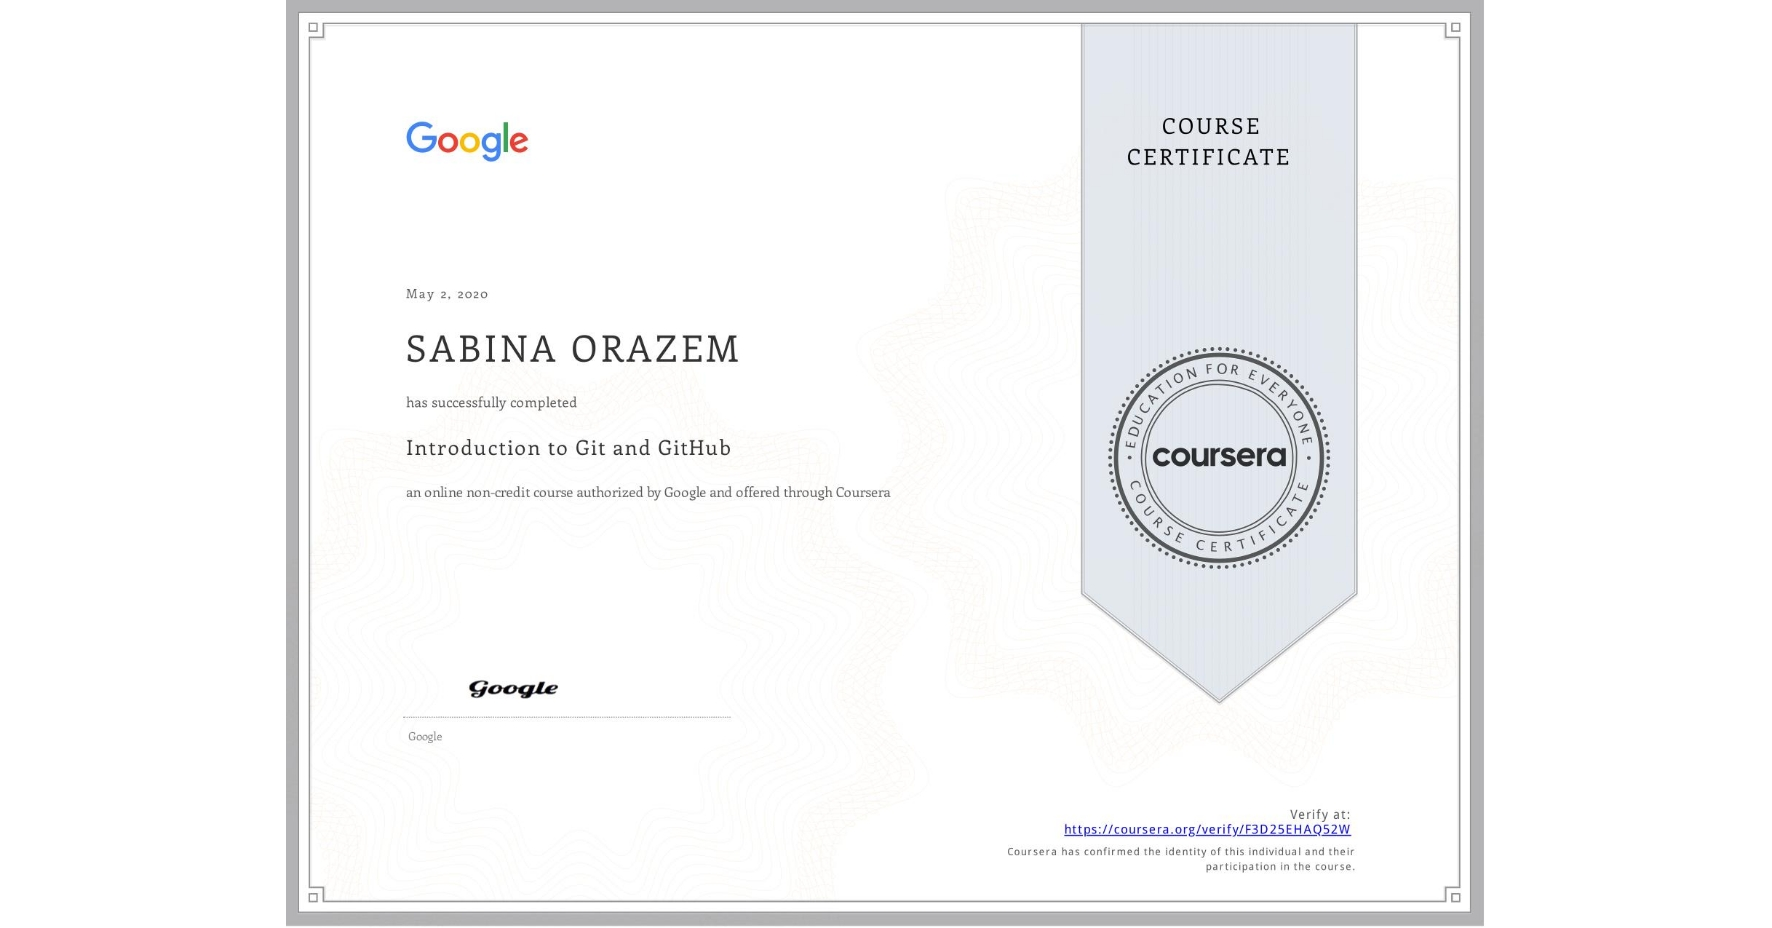 View certificate for SABINA ORAZEM, Introduction to Git and GitHub, an online non-credit course authorized by Google and offered through Coursera